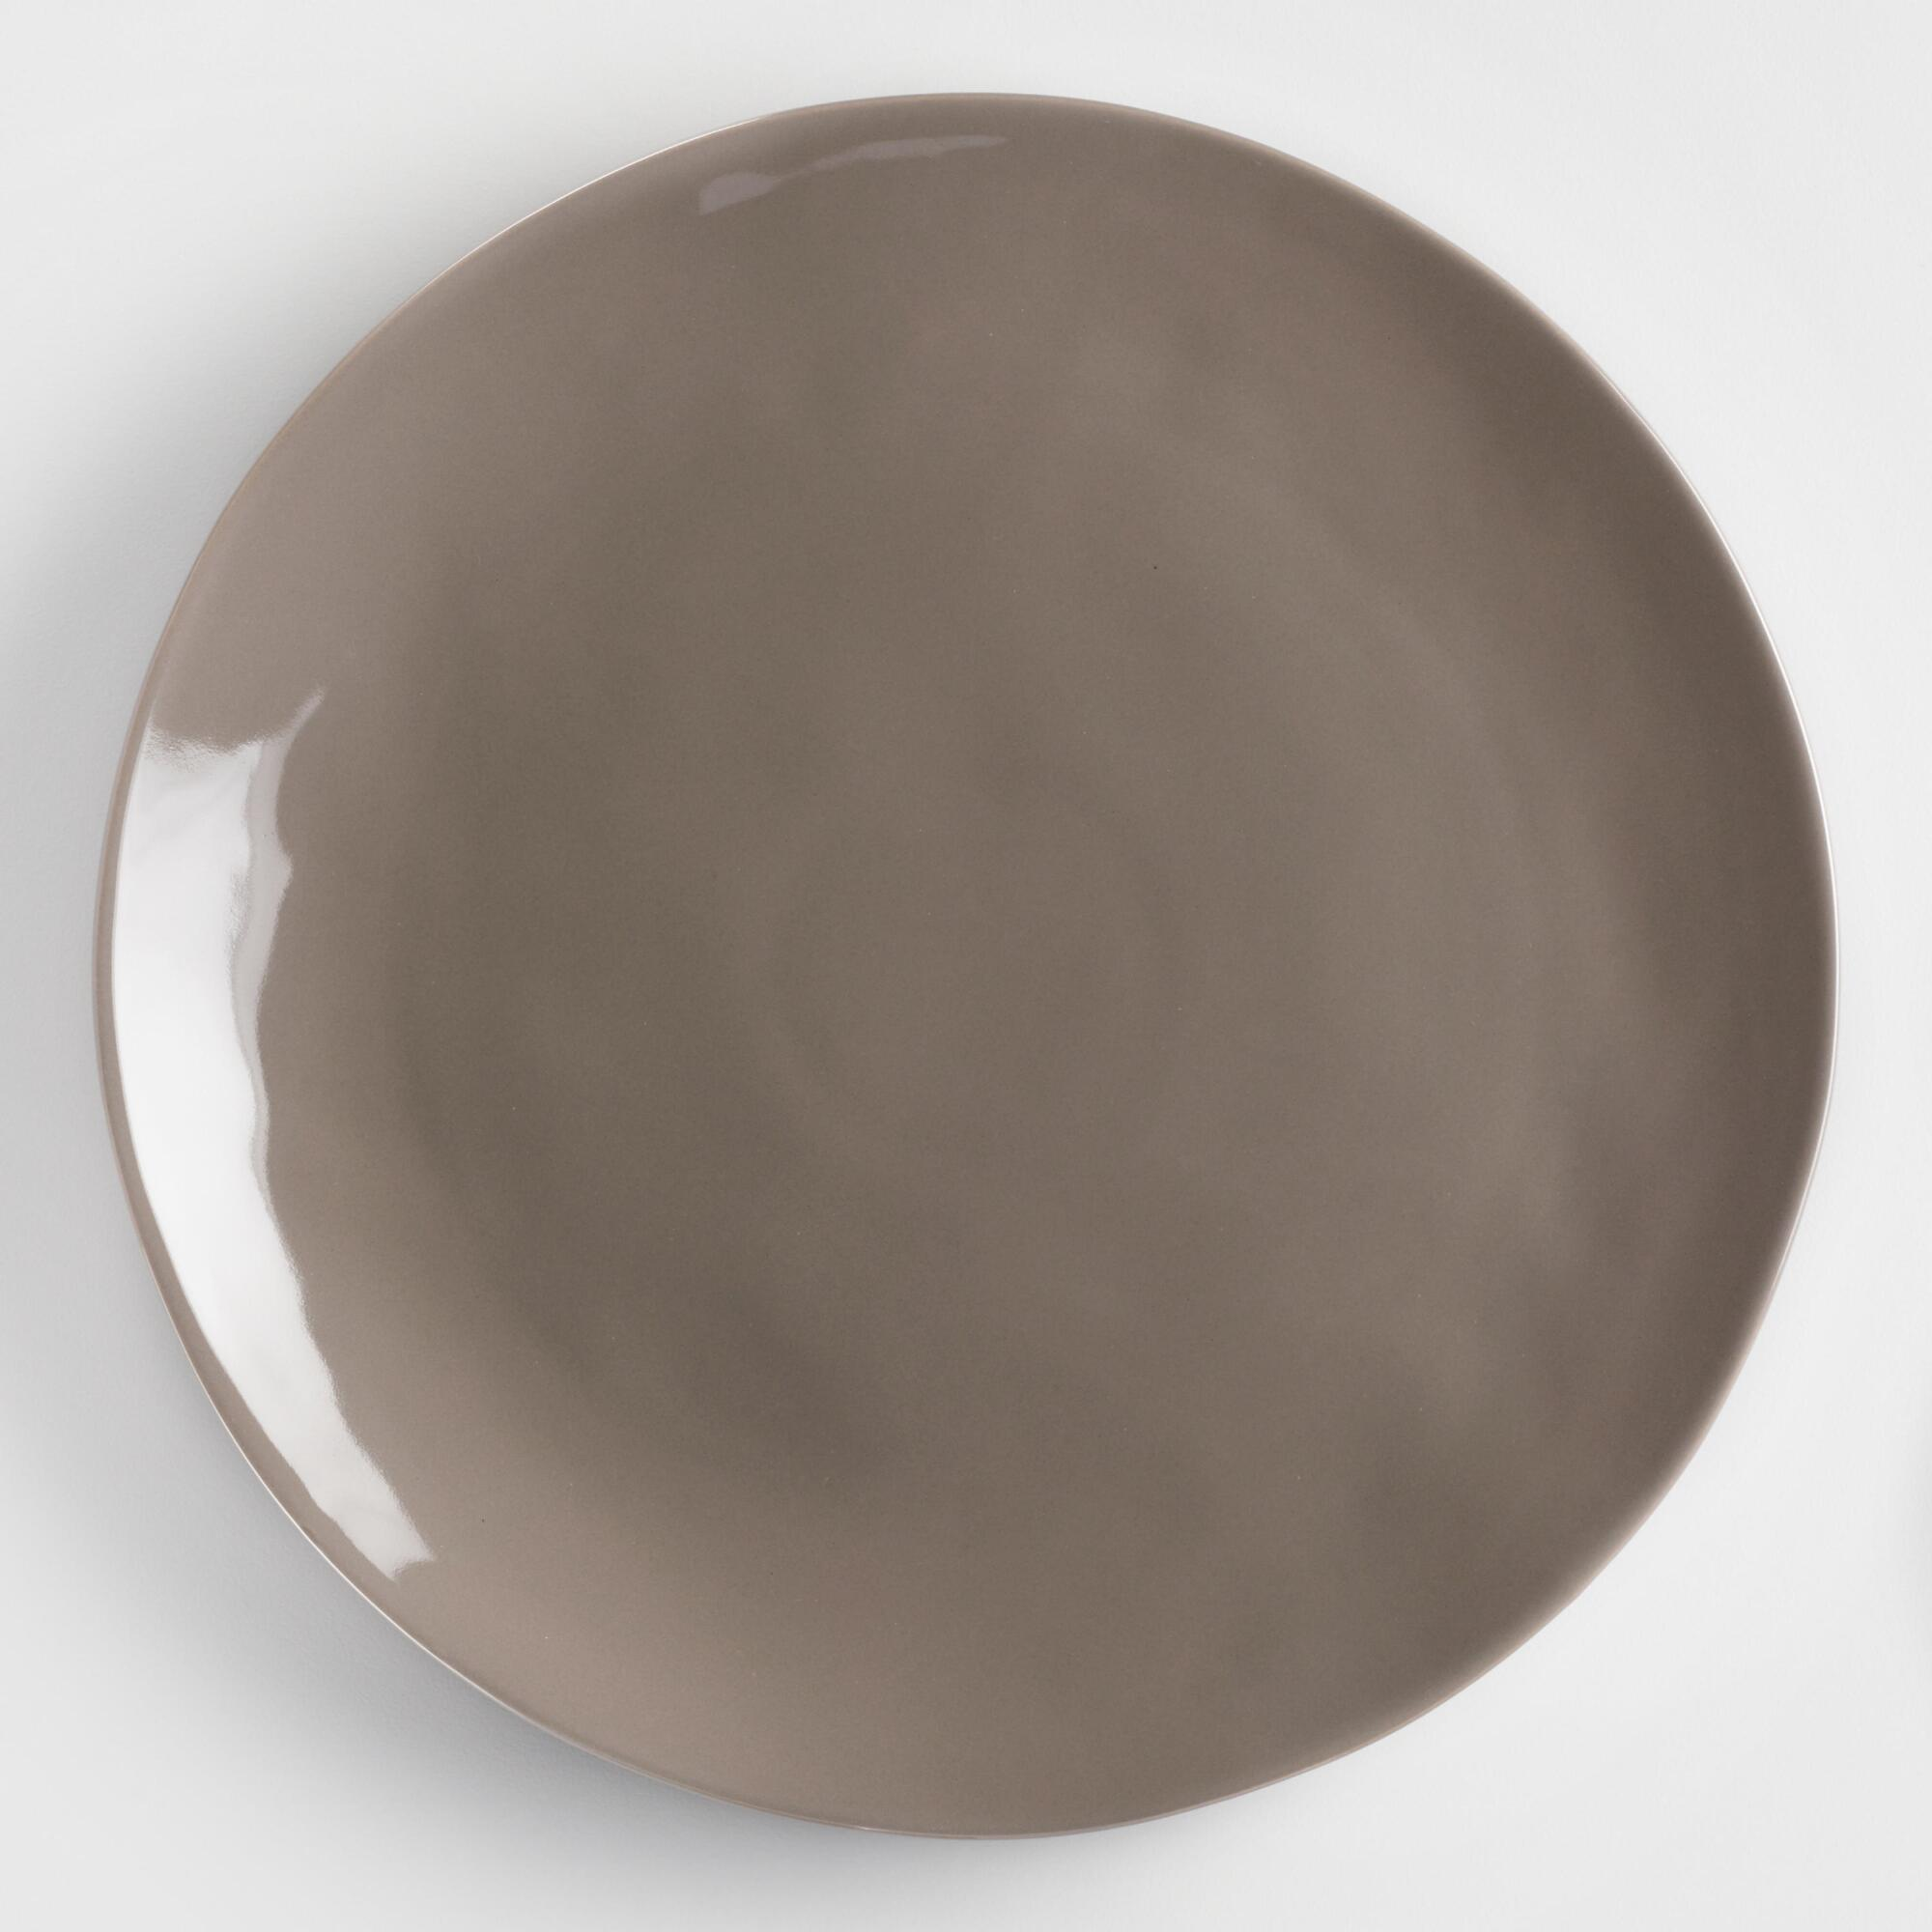 Charcoal Element Dinner Plates Set of 4: Gray - Stoneware by World Market